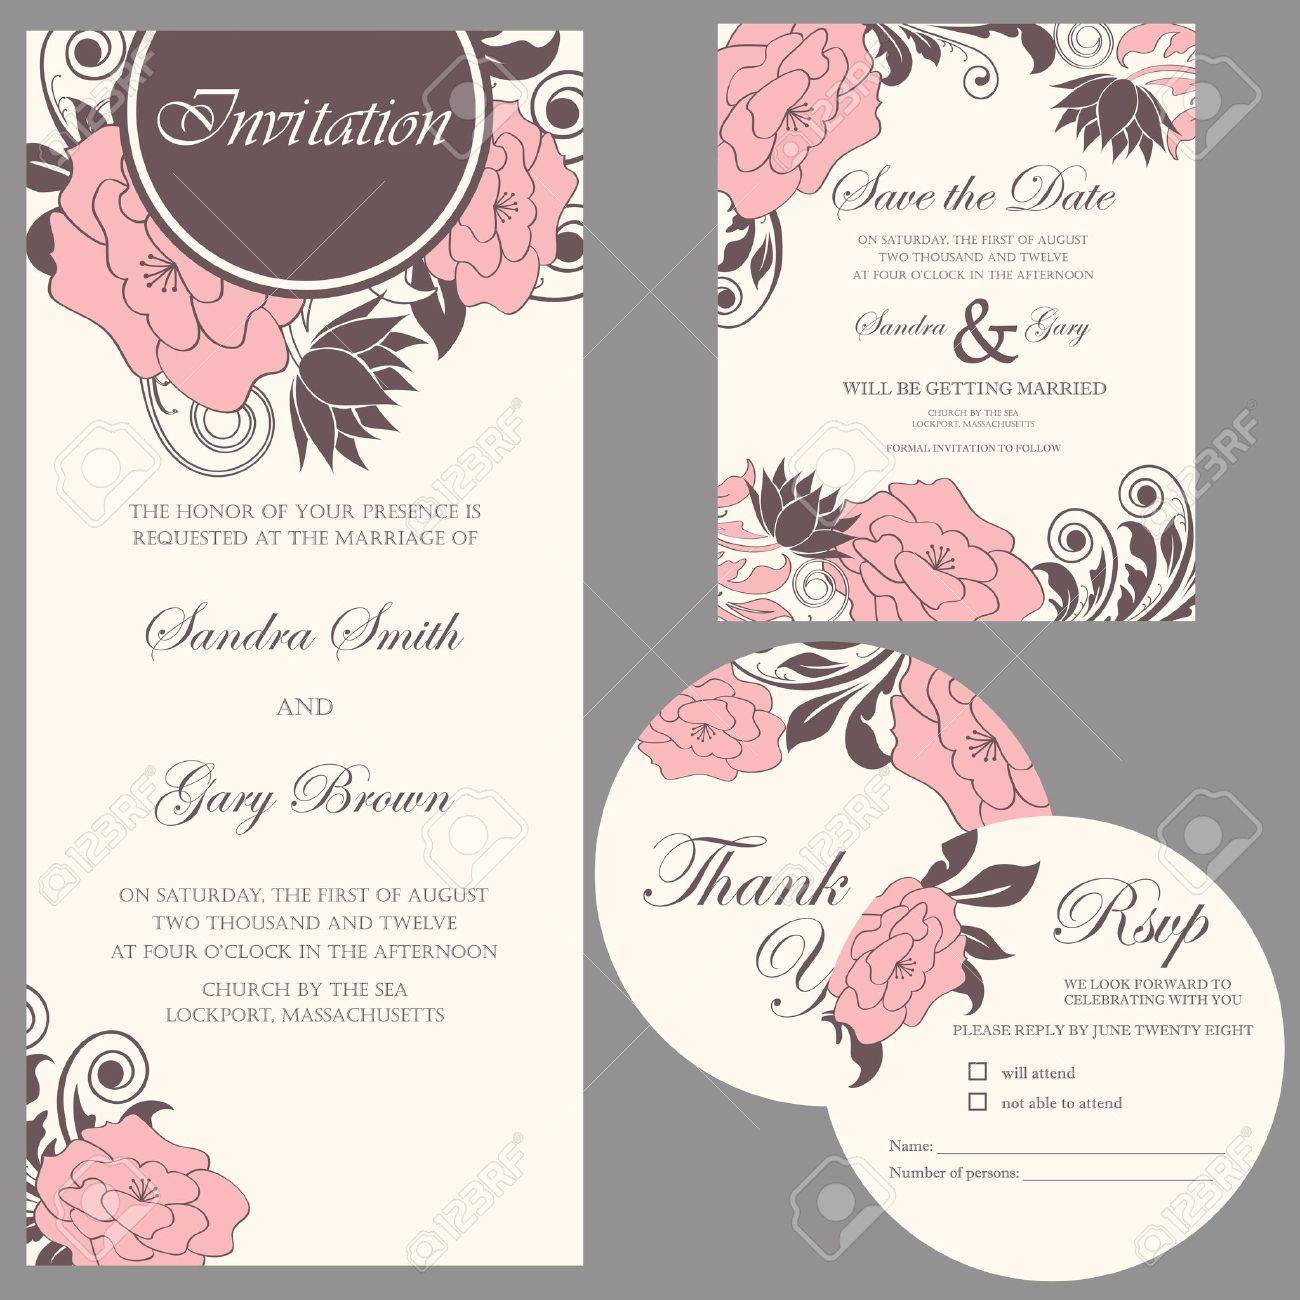 Wedding invitation set  thank you card, save the date card, RSVP card Stock Vector - 20358184